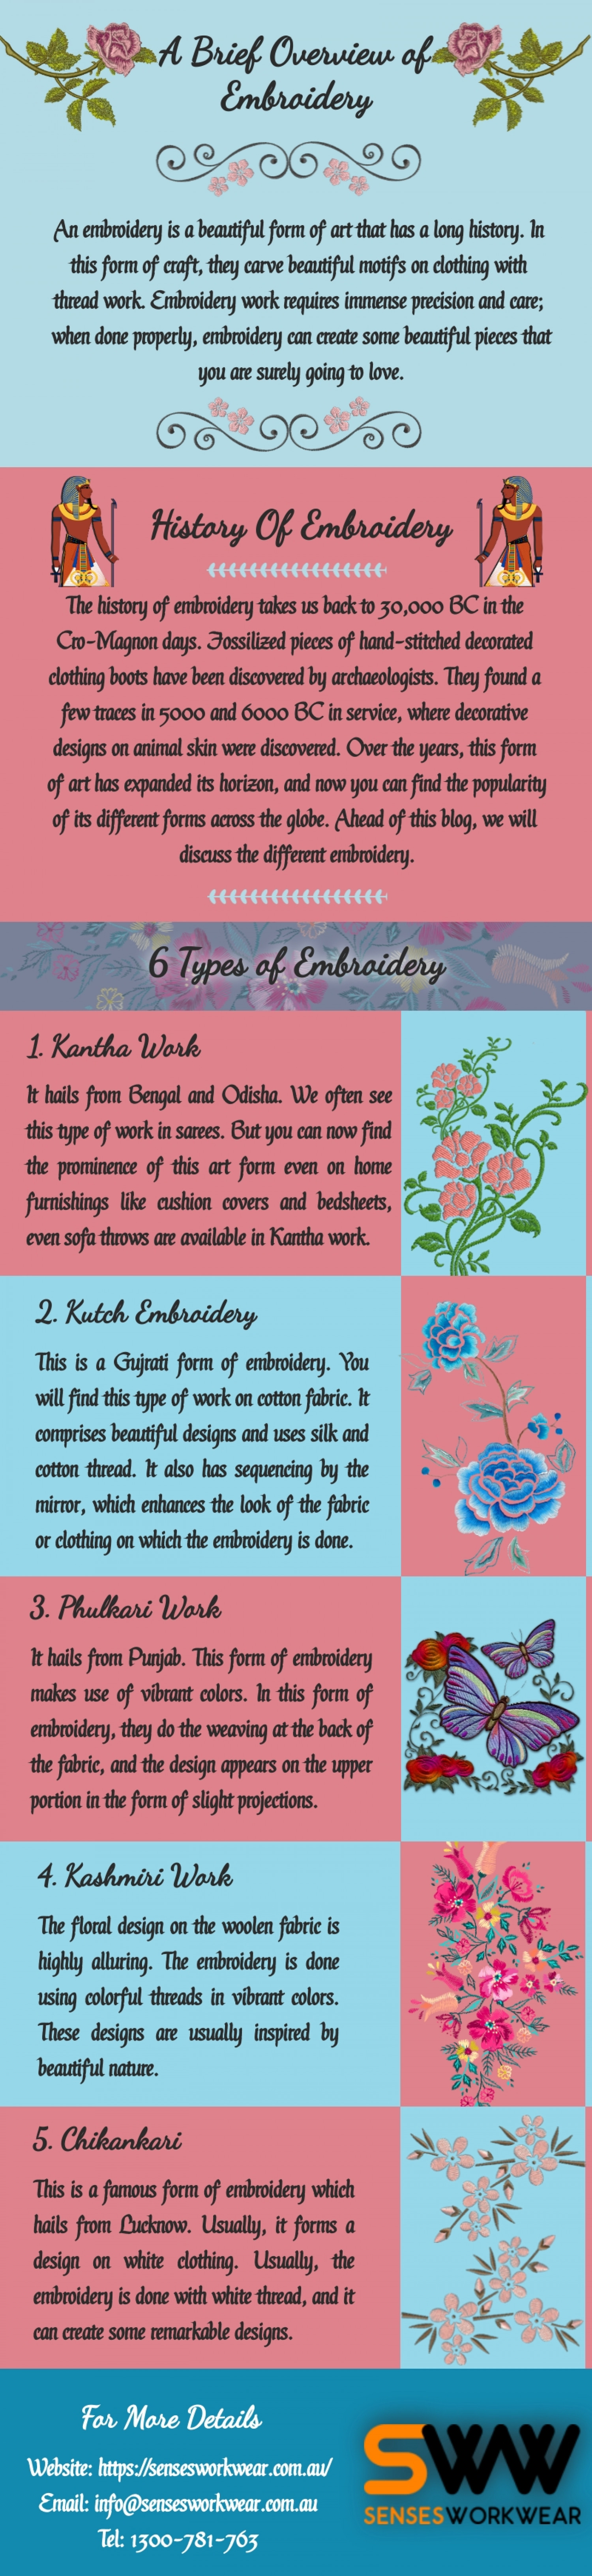 A Brief Overview of Embroidery Infographic